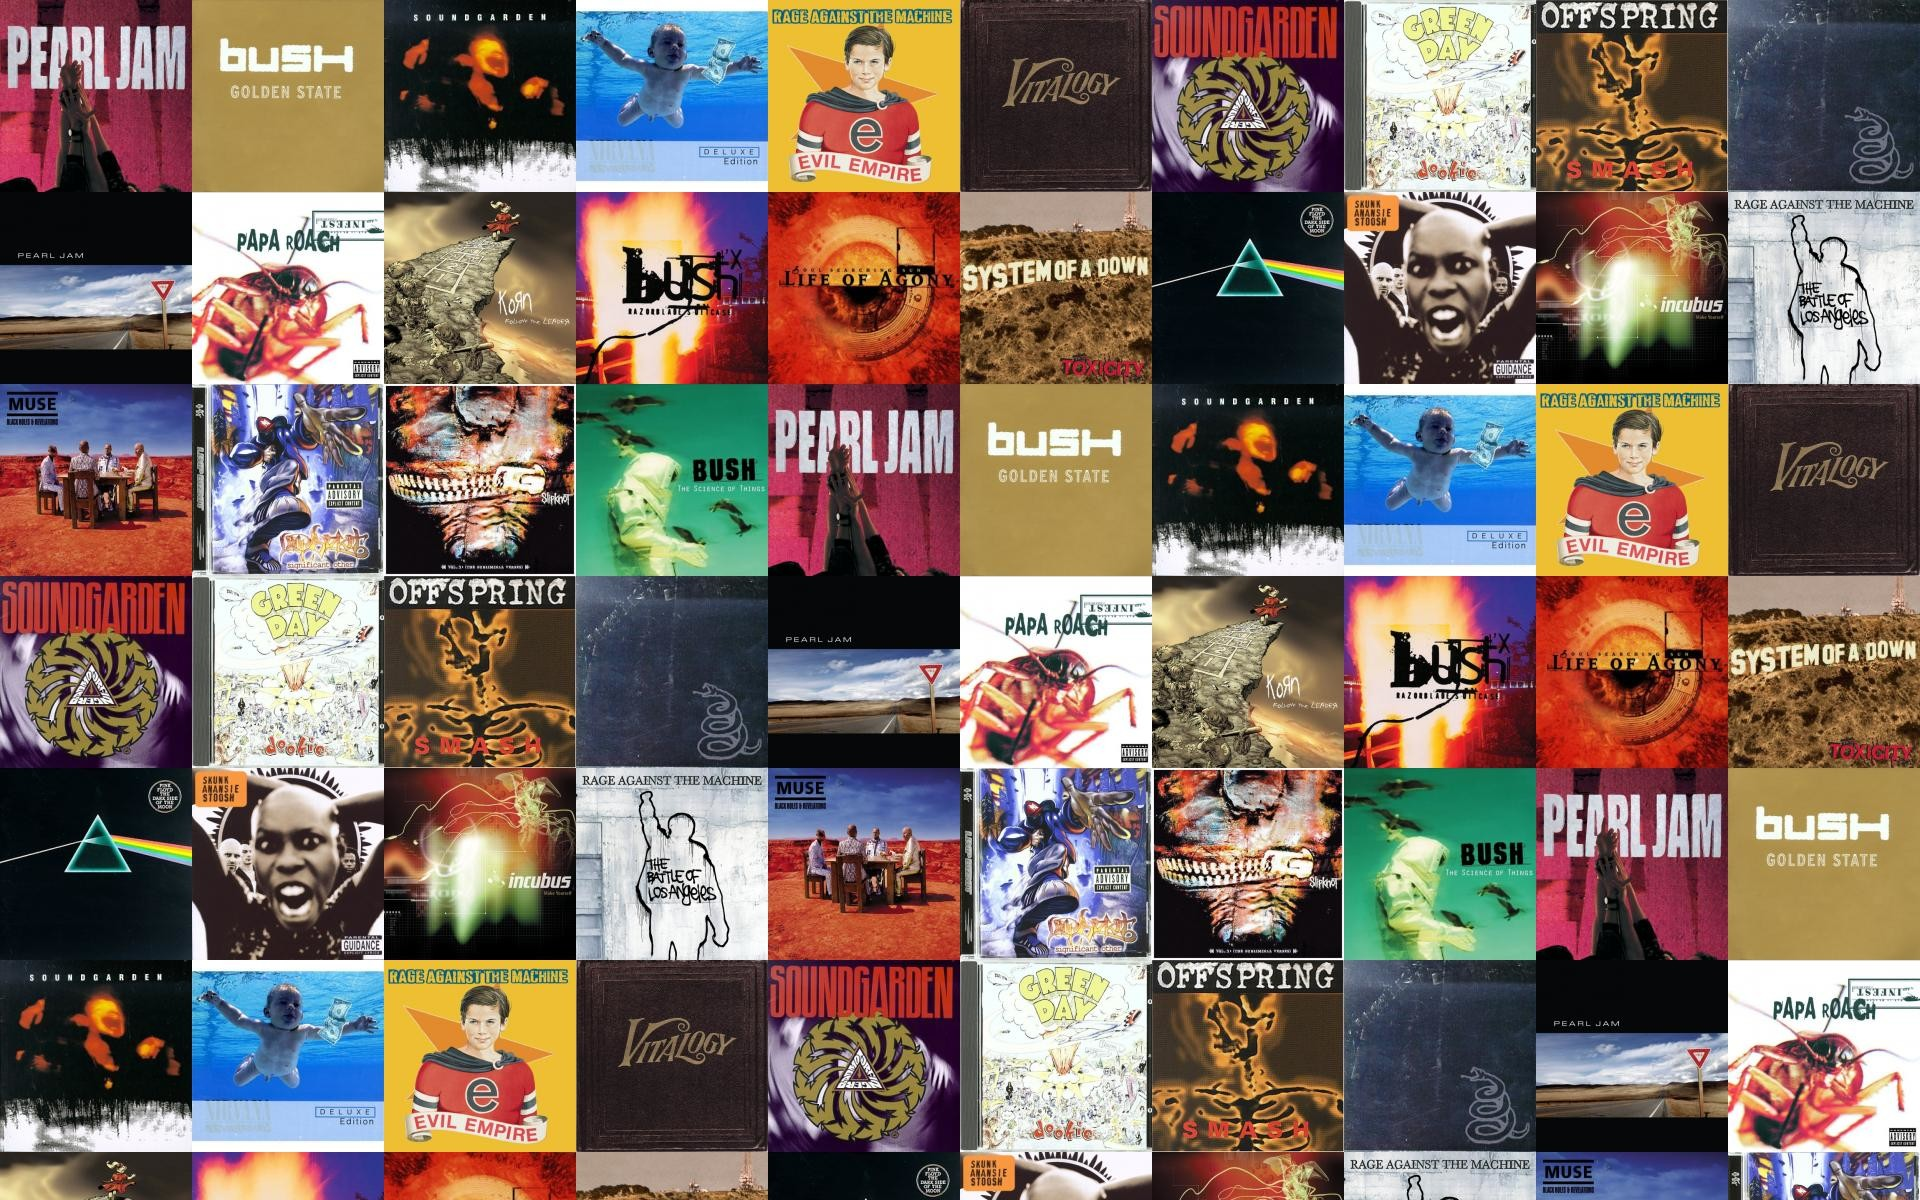 1920x1200 Pearl Jam Ten Bush Golden State Soundgarden Superunknown Wallpaper Â« Tiled  Desktop Wallpaper